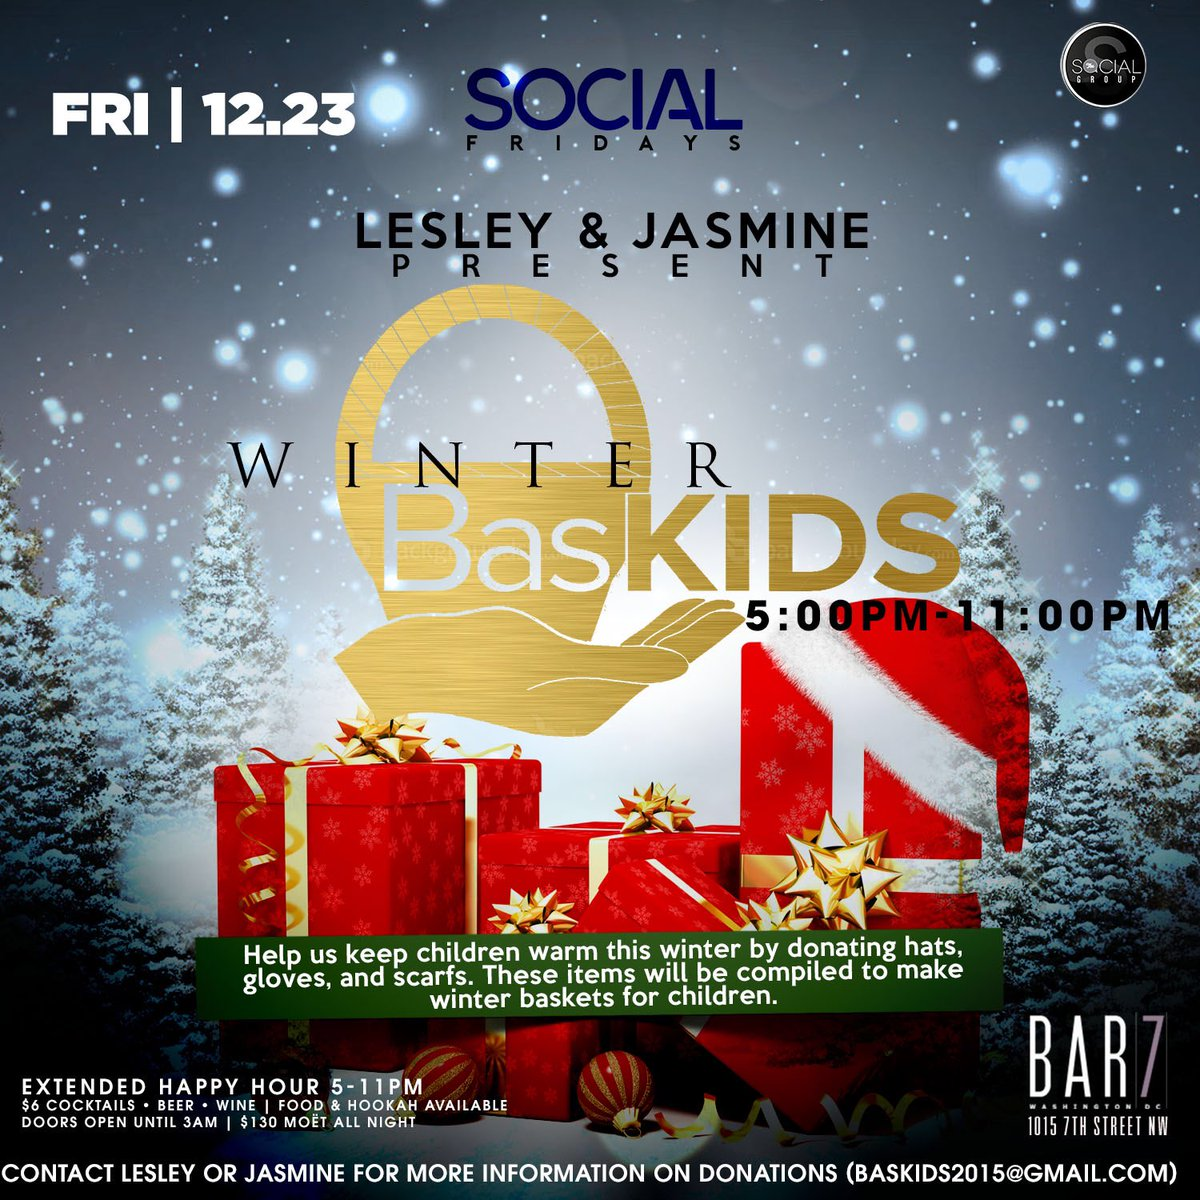 This Friday Happy Hour! Come Out & Support BasKids As We Collect Winter Accessories For The Kiddies! #BasKids #DMV https://t.co/198VSkNuxA